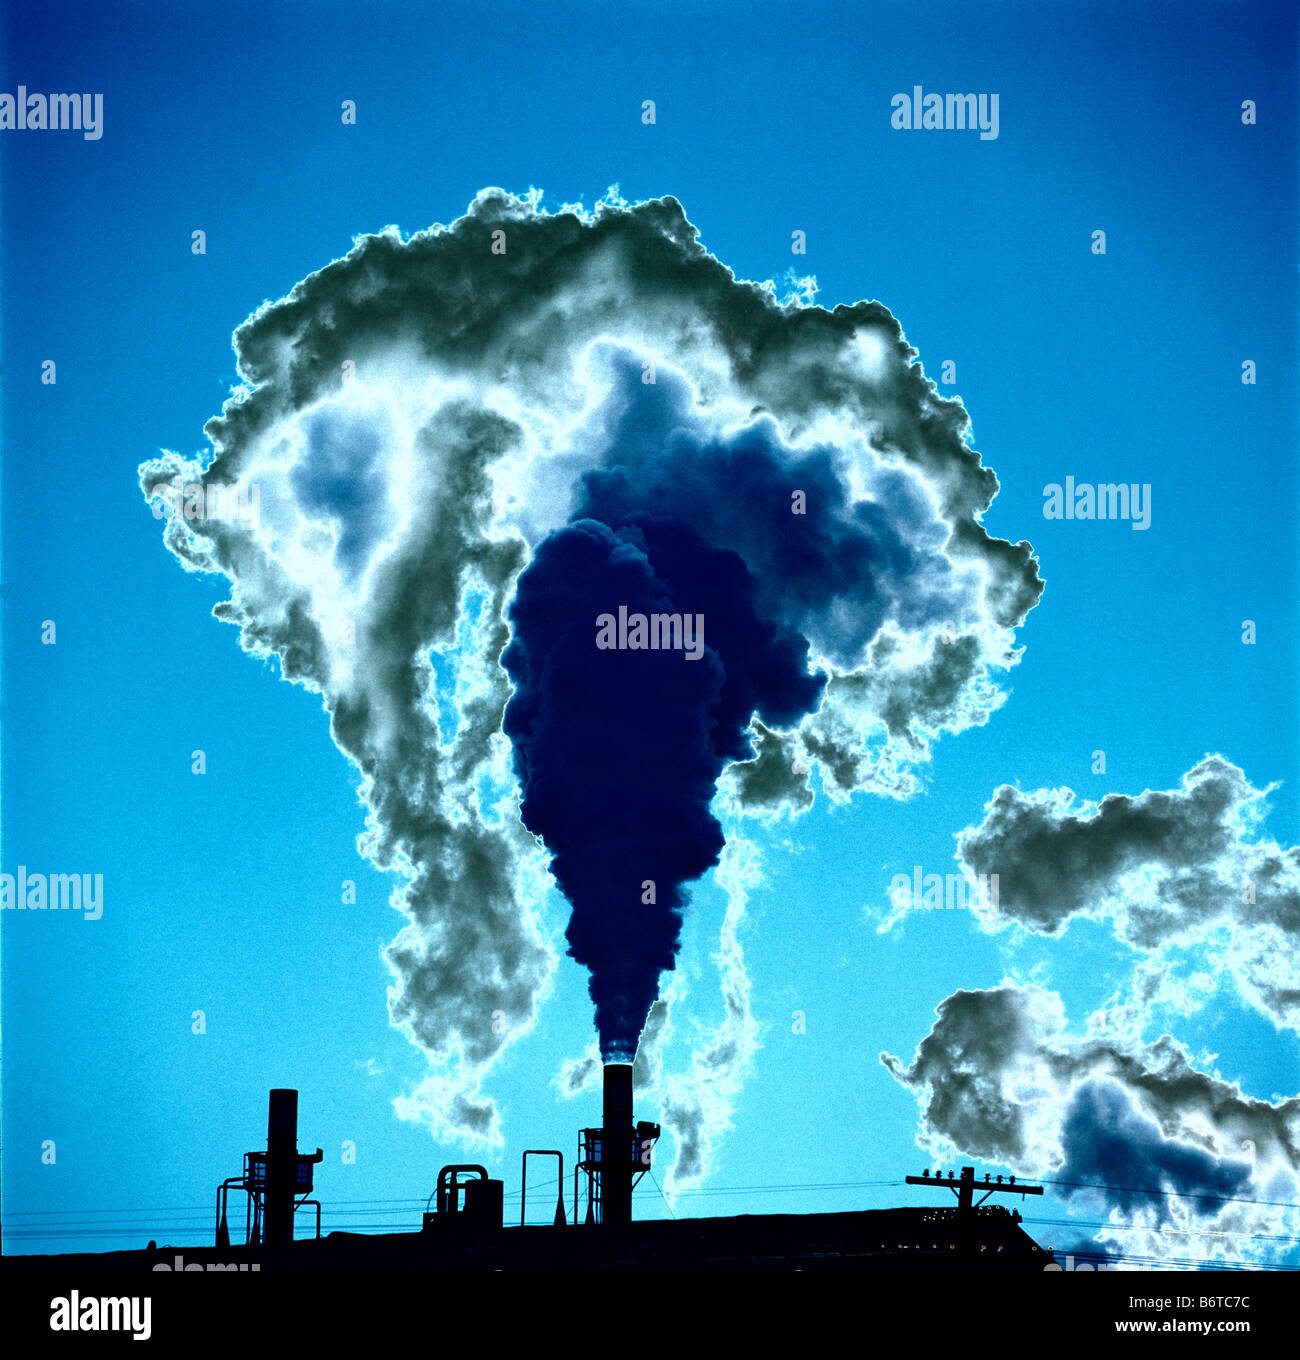 smoke pouring from chimney in industrial area - Stock Image